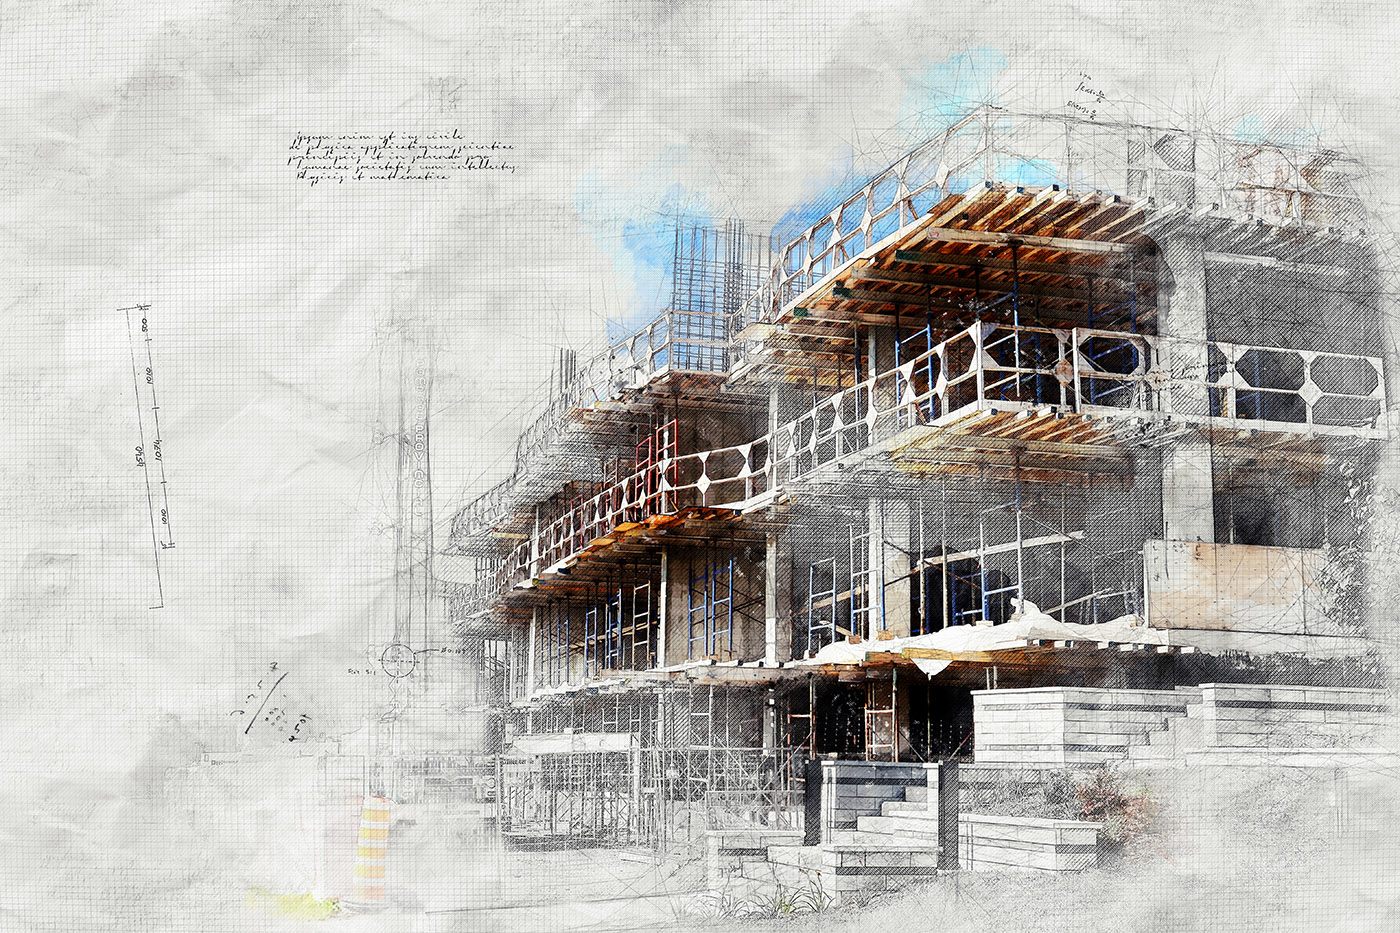 Construction Project Sketch Image - Royalty-Free Stock Imagery